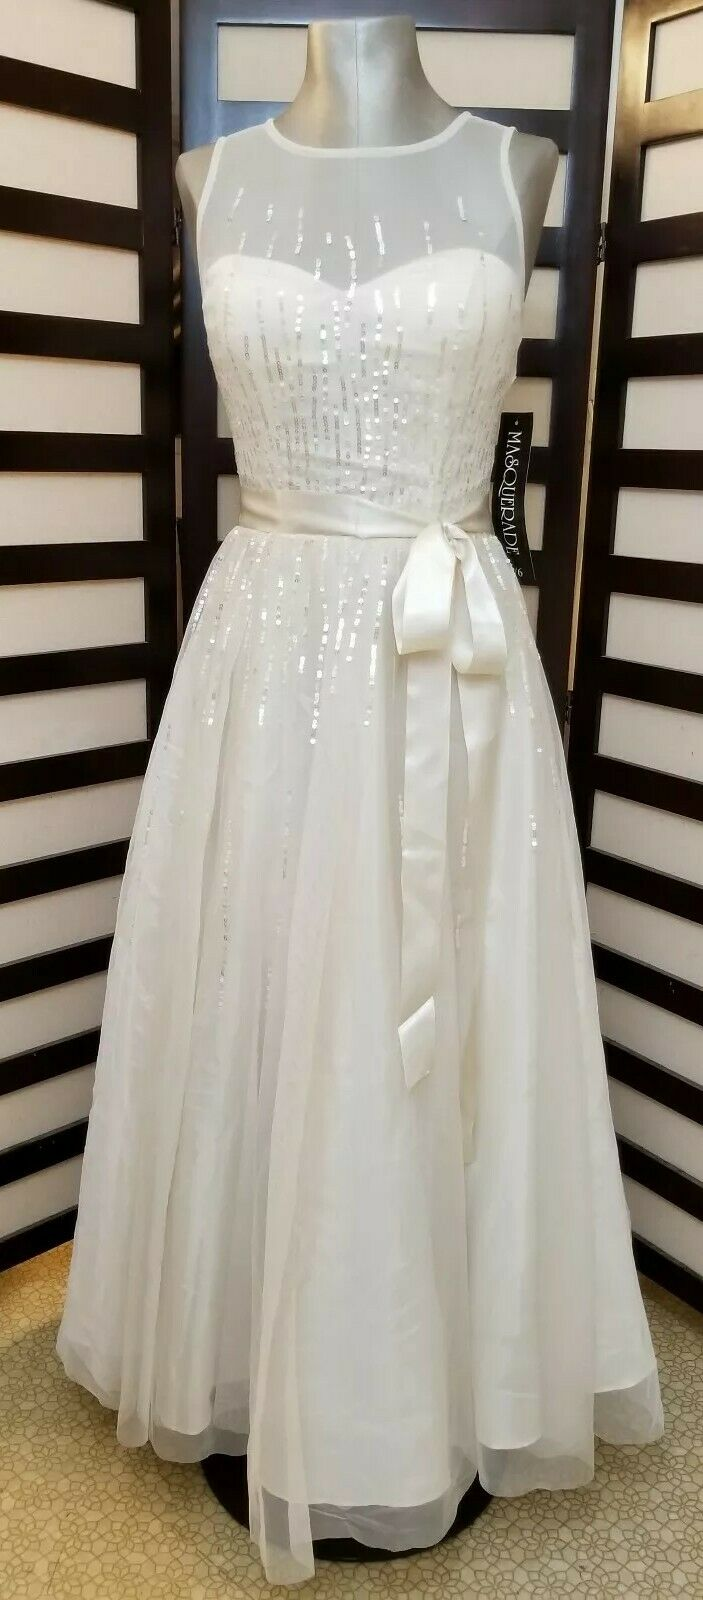 Masquerade Ivory Sequin Sleeveless Lace Dress Formal Gown Wedding Dress Prom 5 6